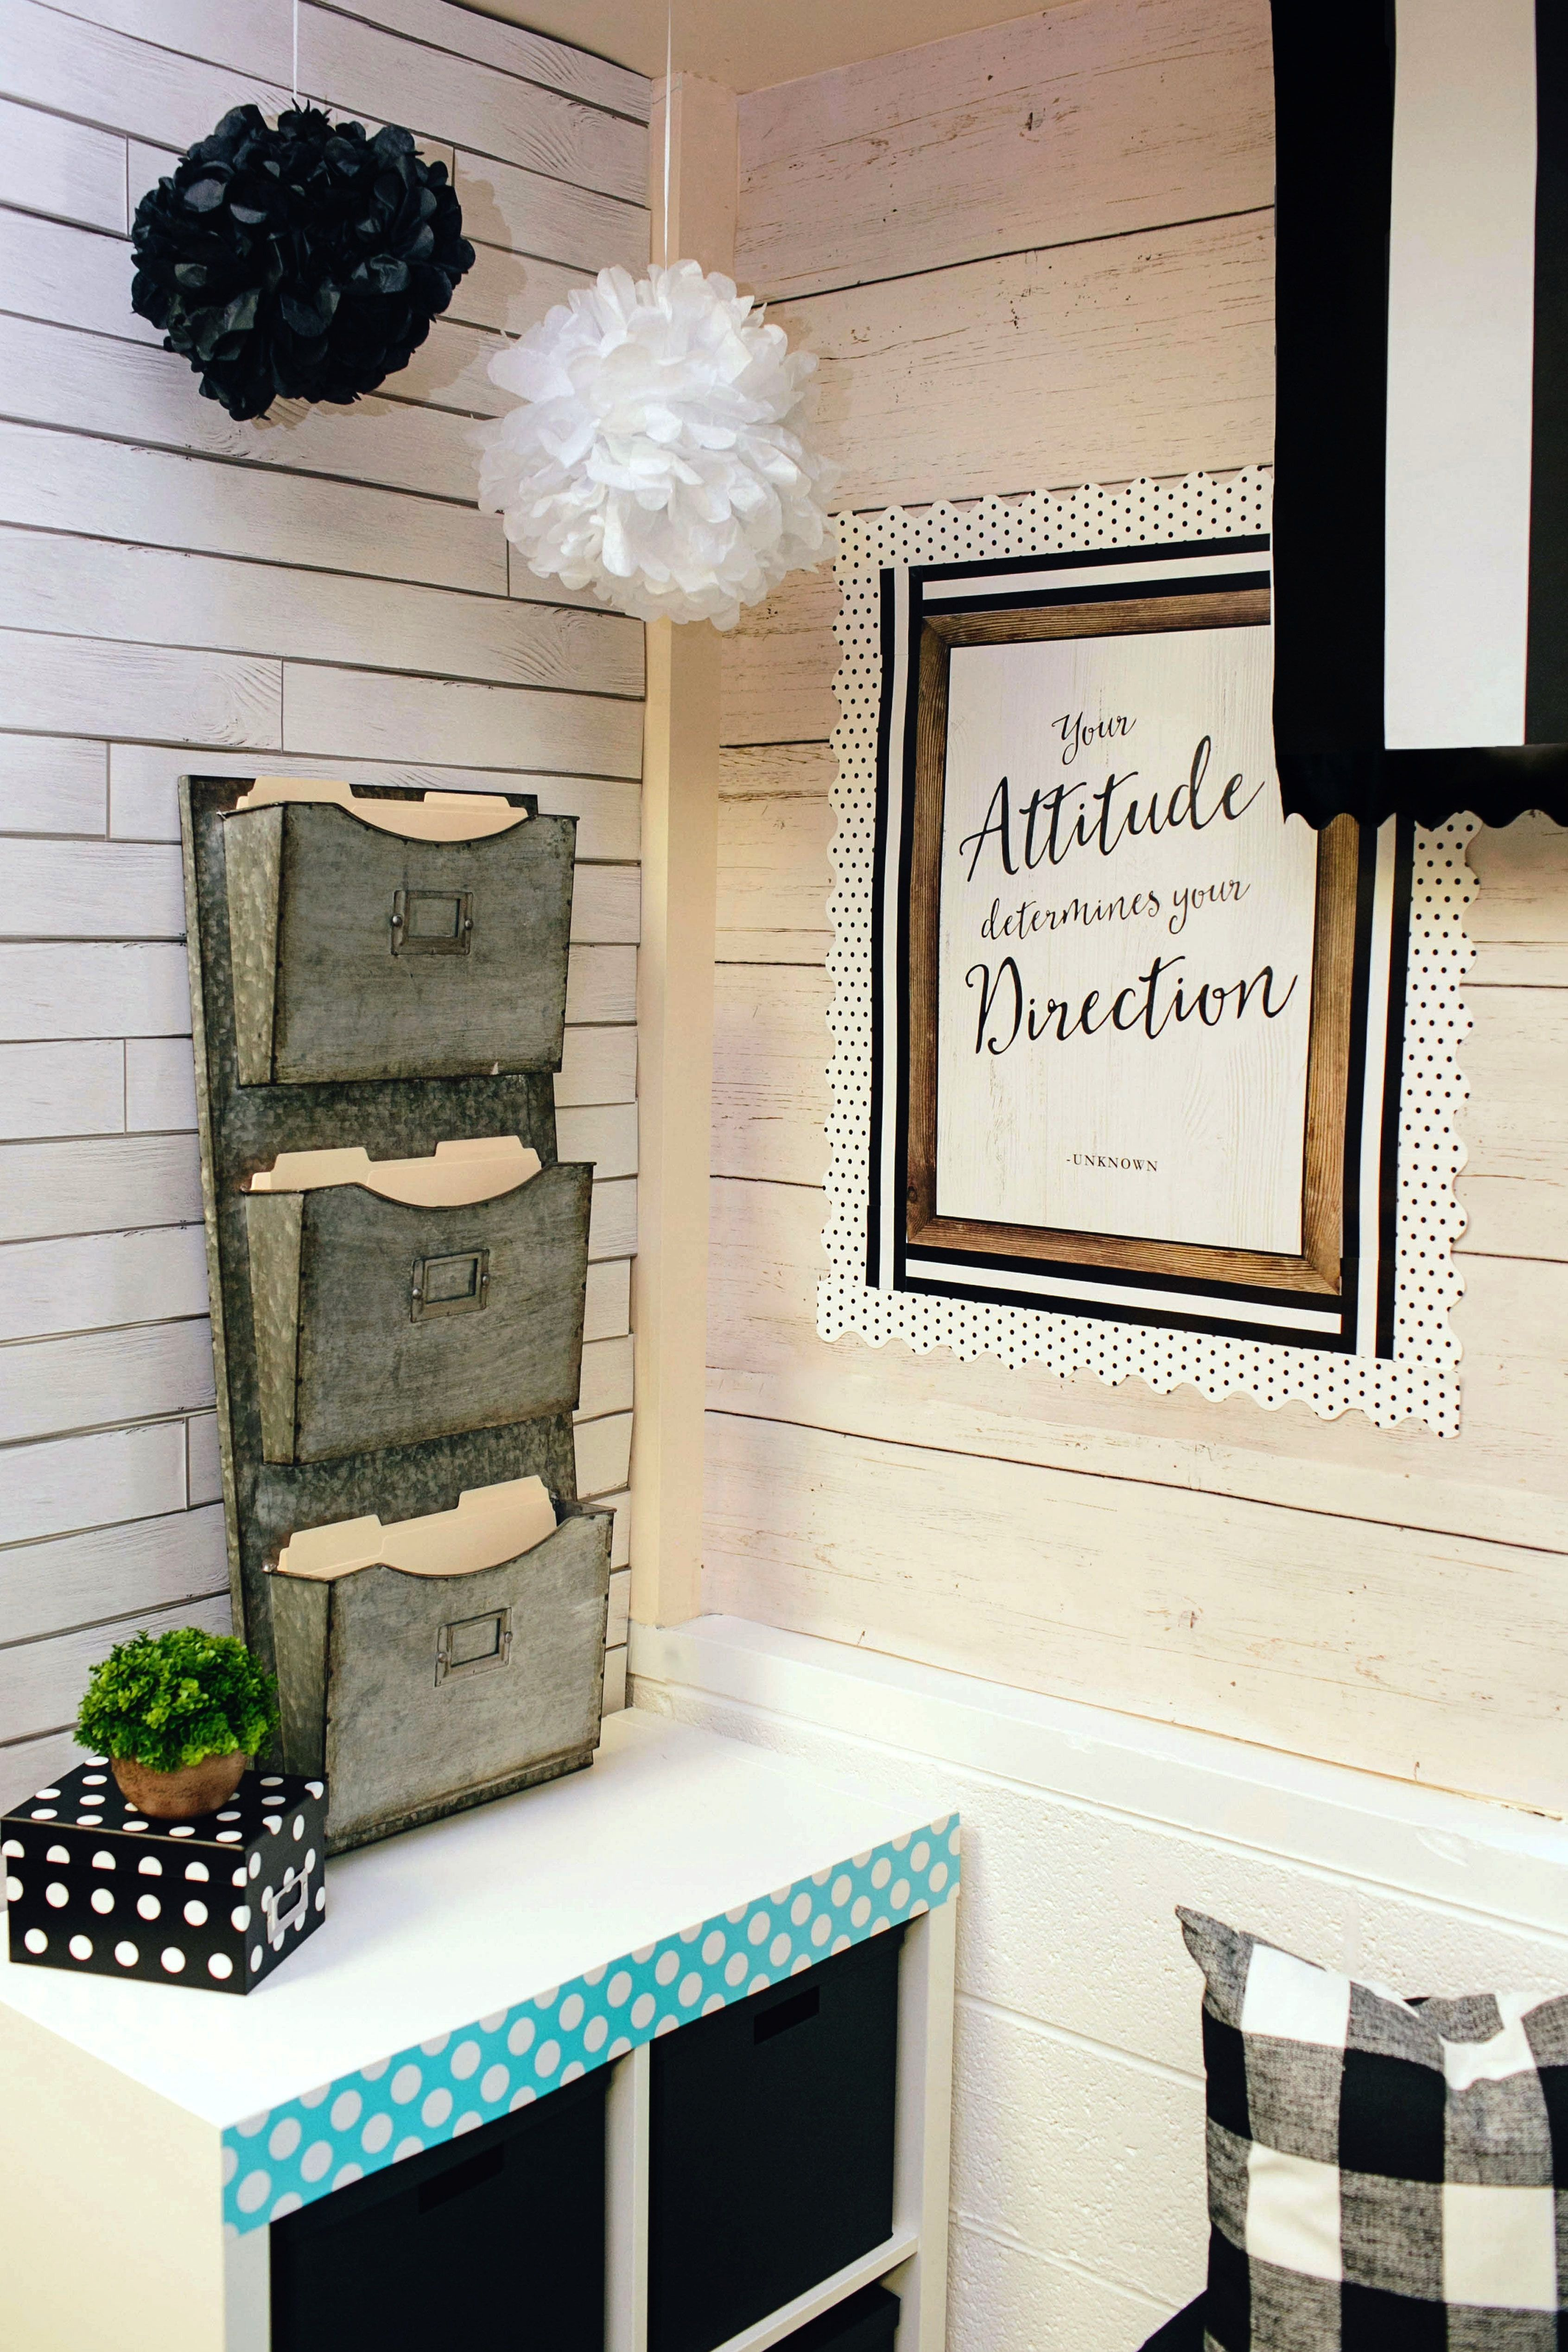 Chic borders will add a stylish touch to classroom displays, message boards, bulletin board sets, a